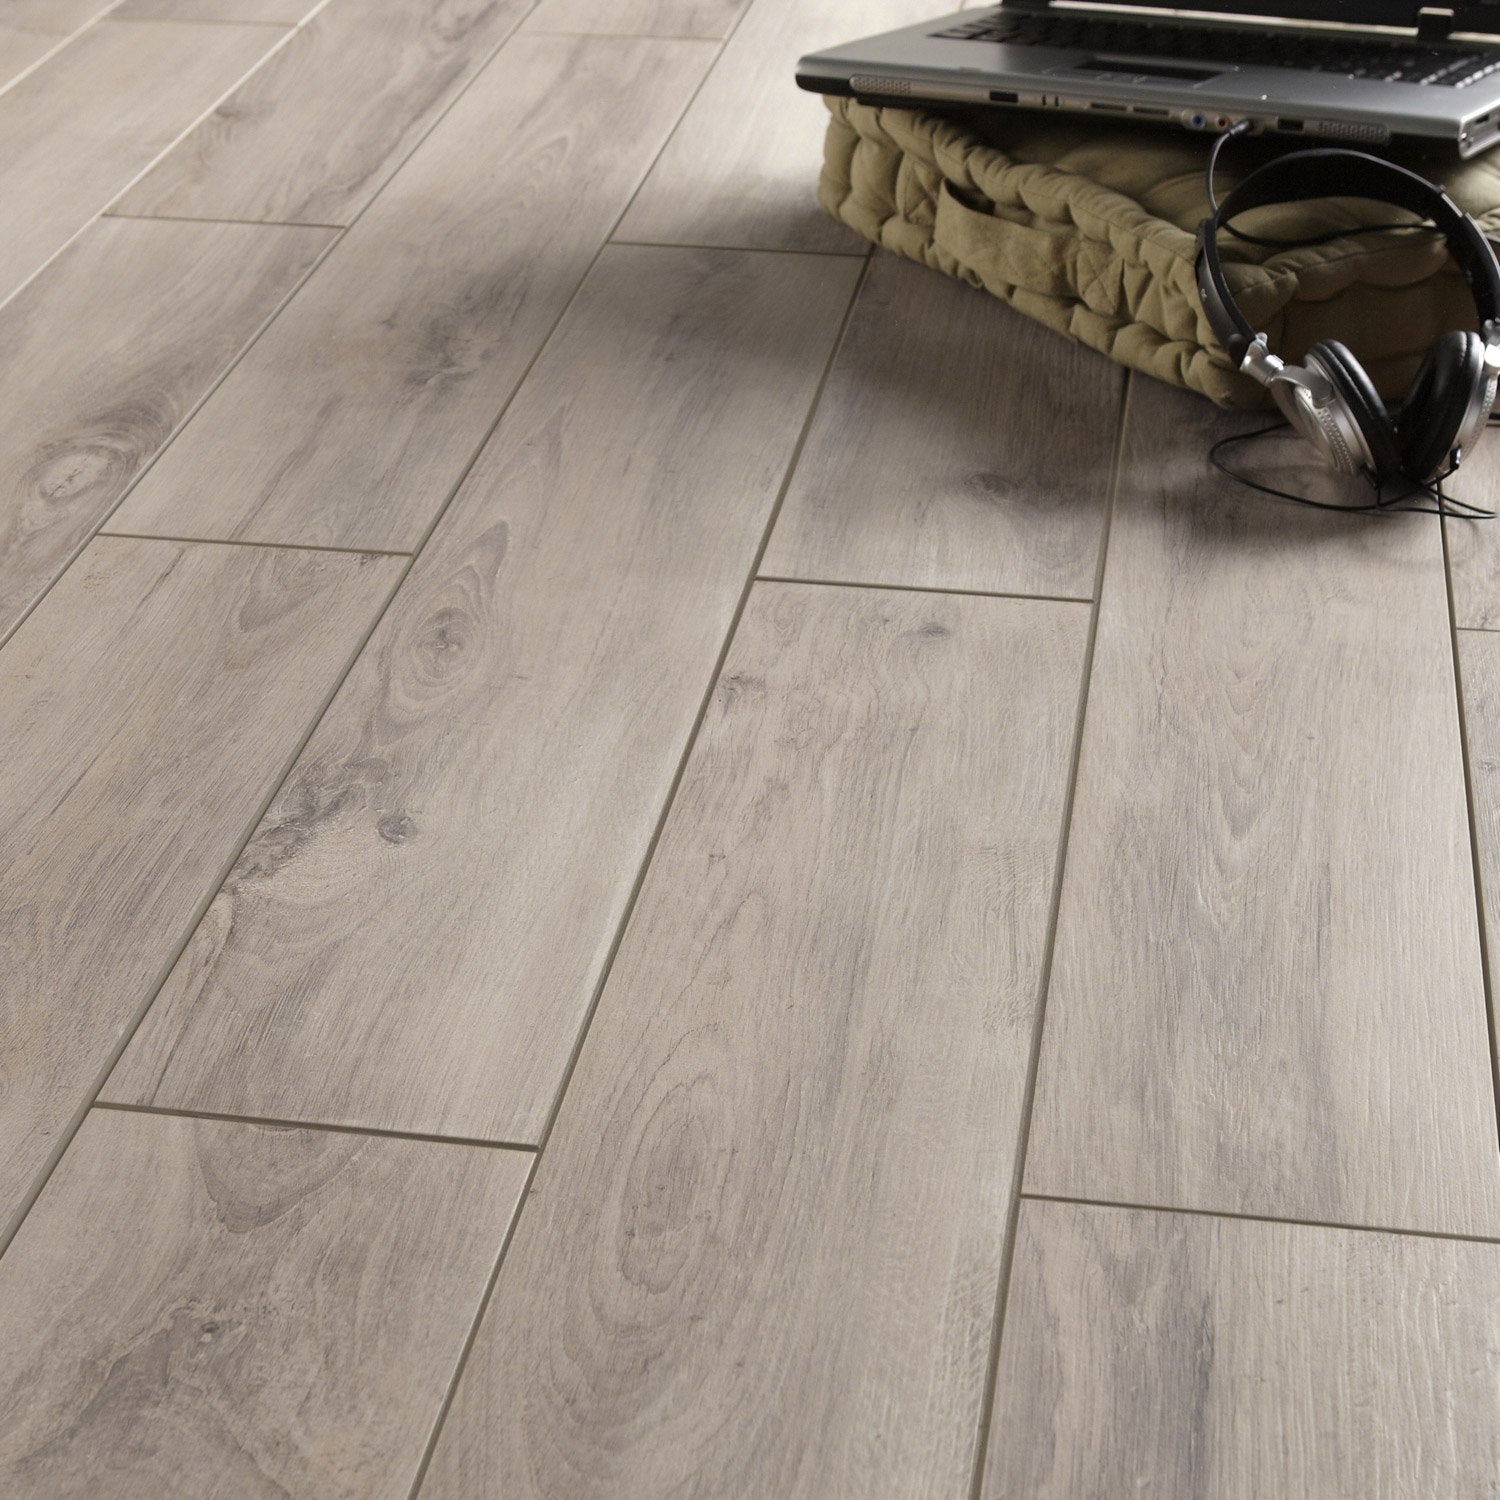 carrelage imitation parquet gris clair On carrelage parquet gris